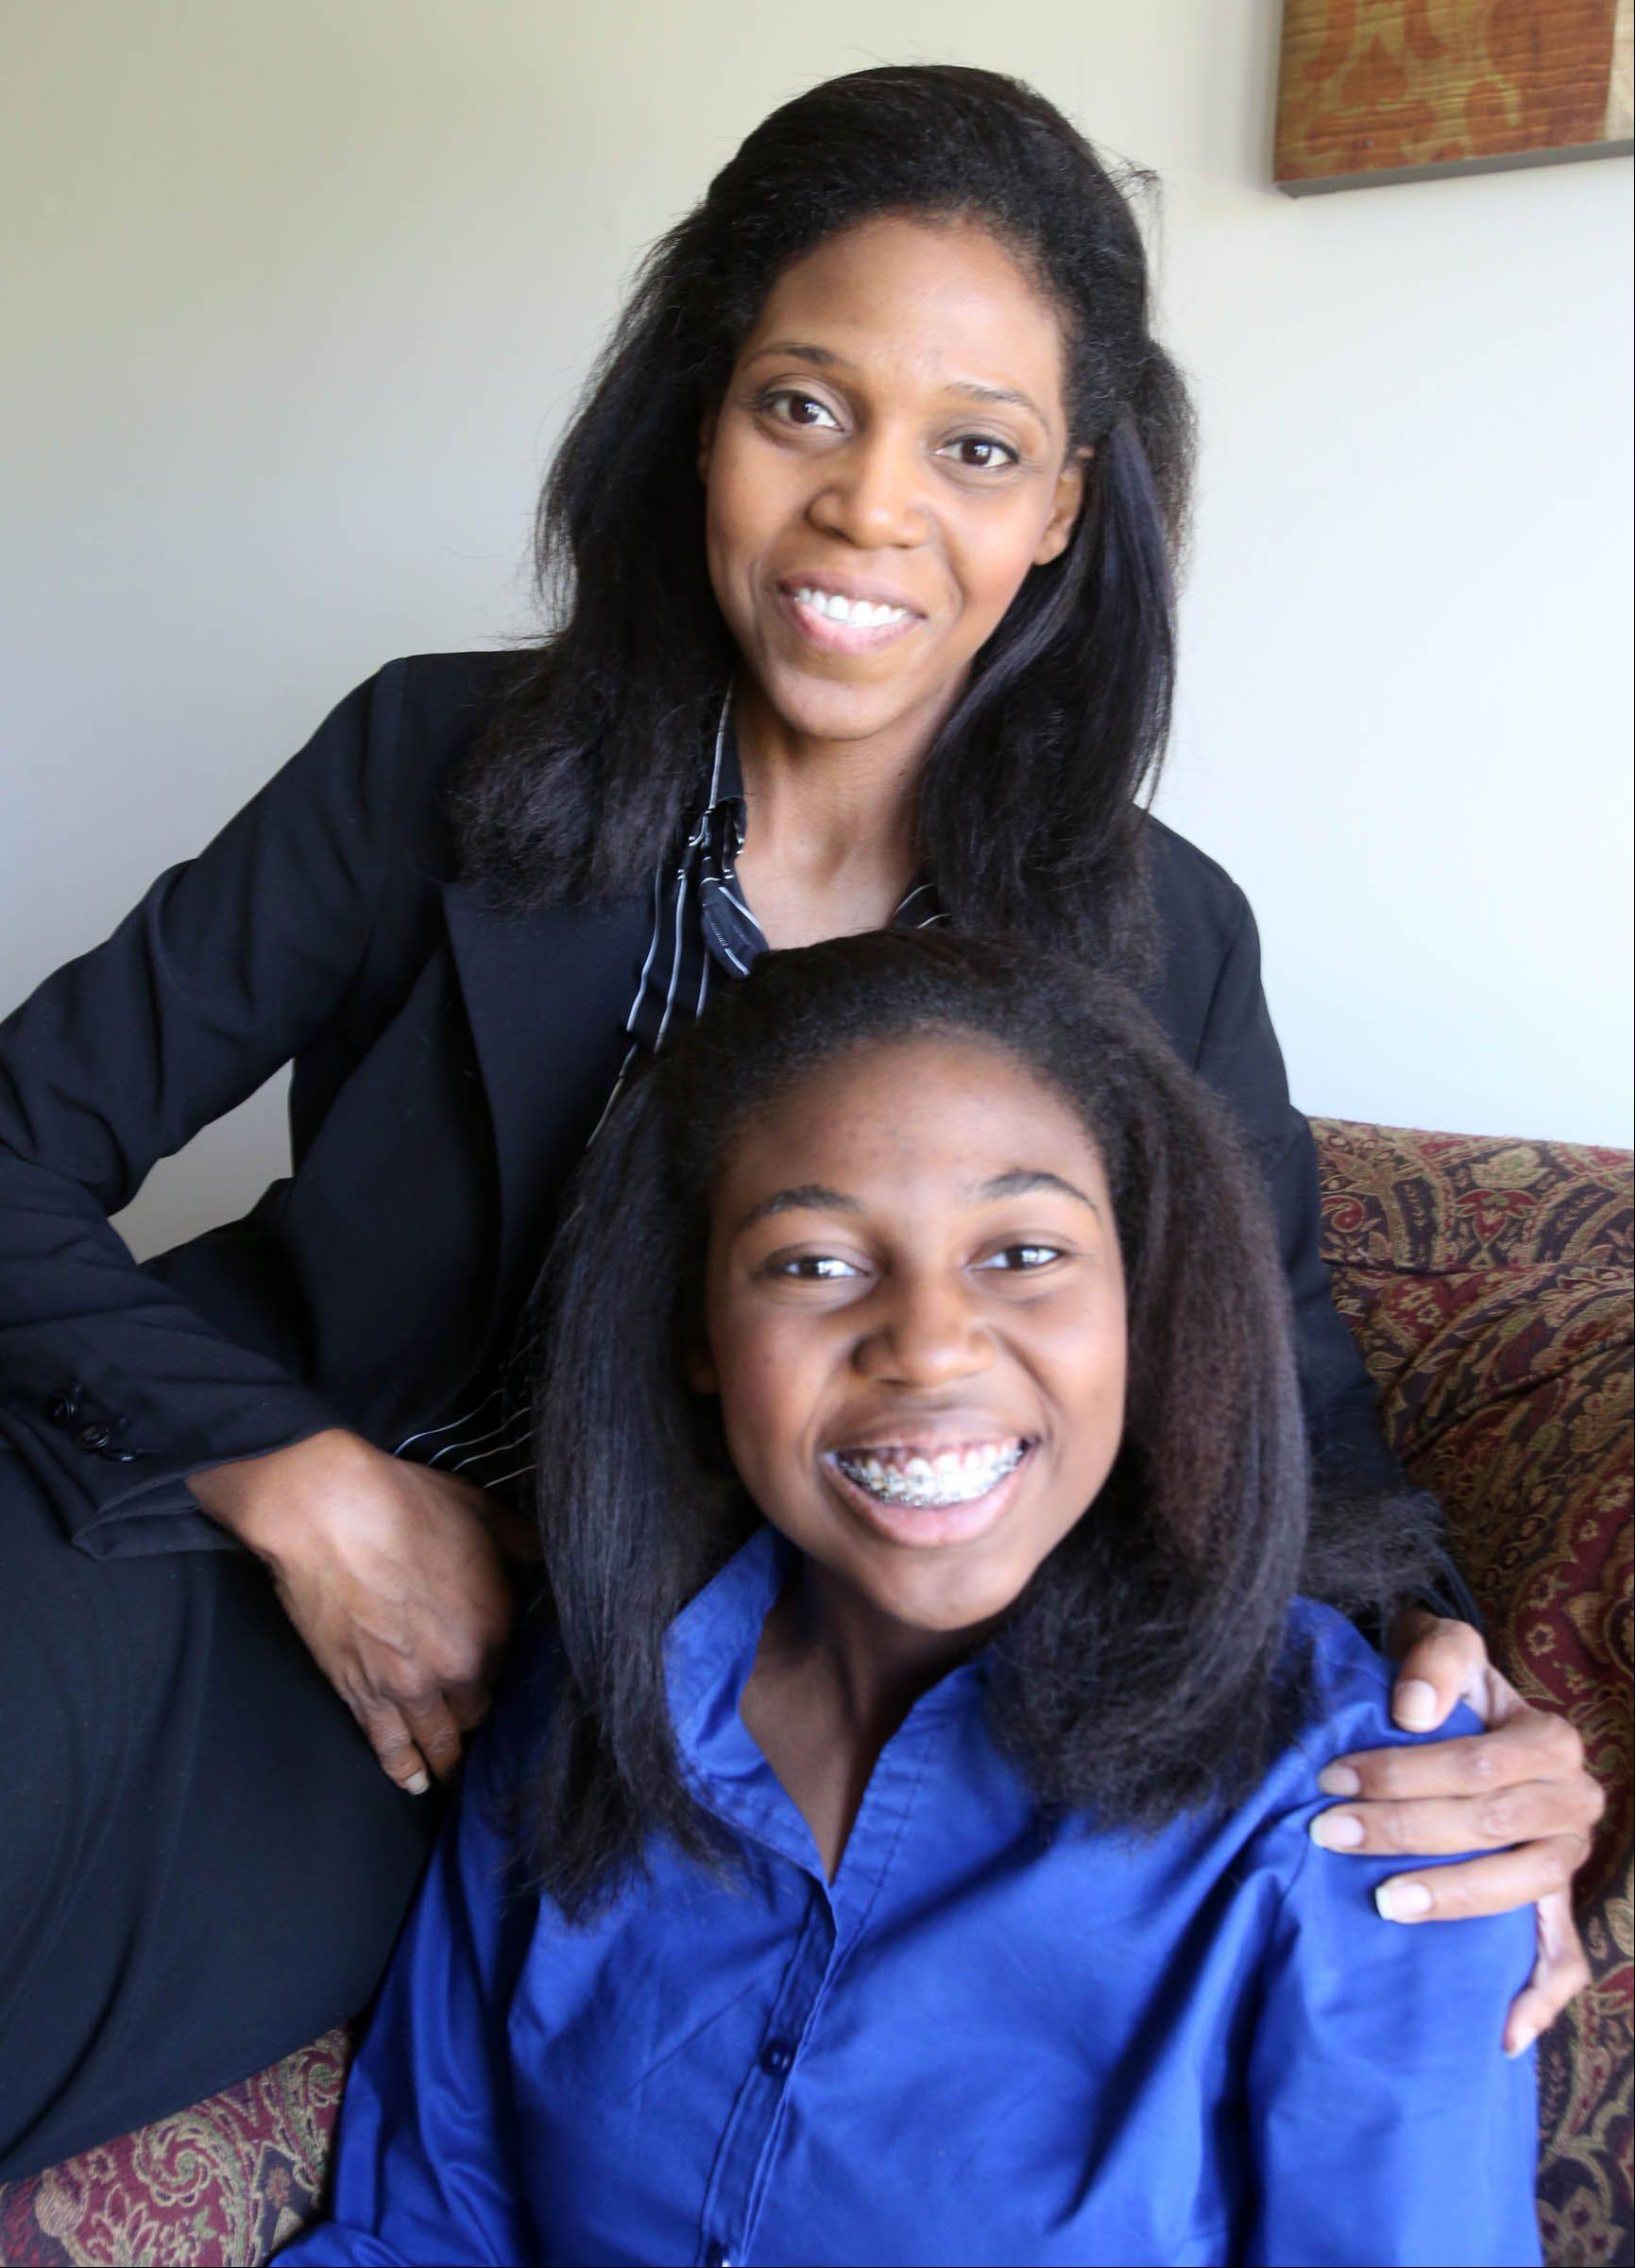 Thessalonika Arzu-Embry with her mother (and schoolmate), Wonder Embry, at their home at Great Lakes. Thessalonika, 14, will be graduating from Chicago State University in August with a bachelor's degree in psychology.